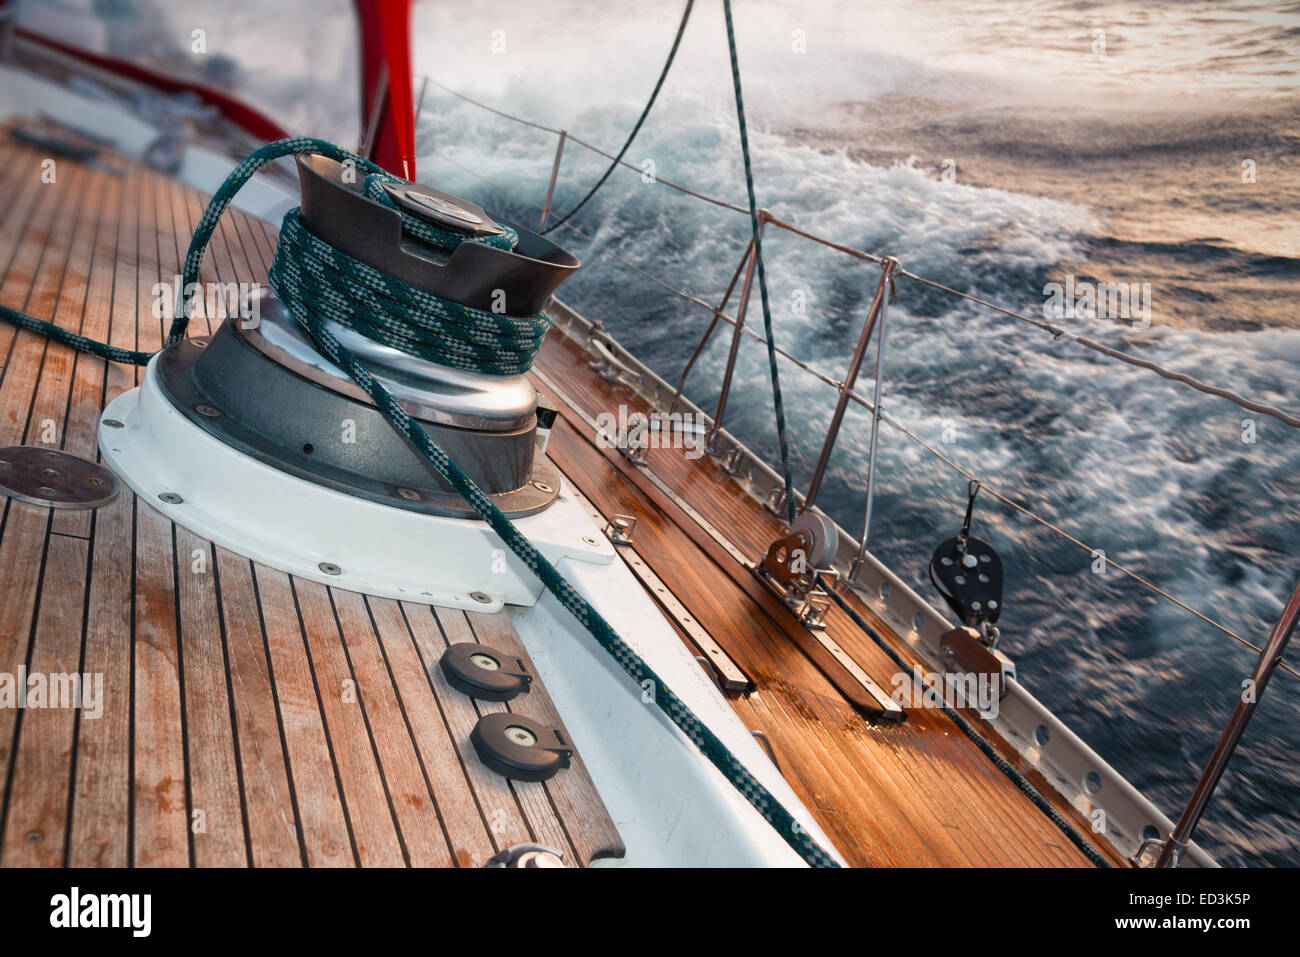 sail boat under the storm, detail on the winch - Stock Image